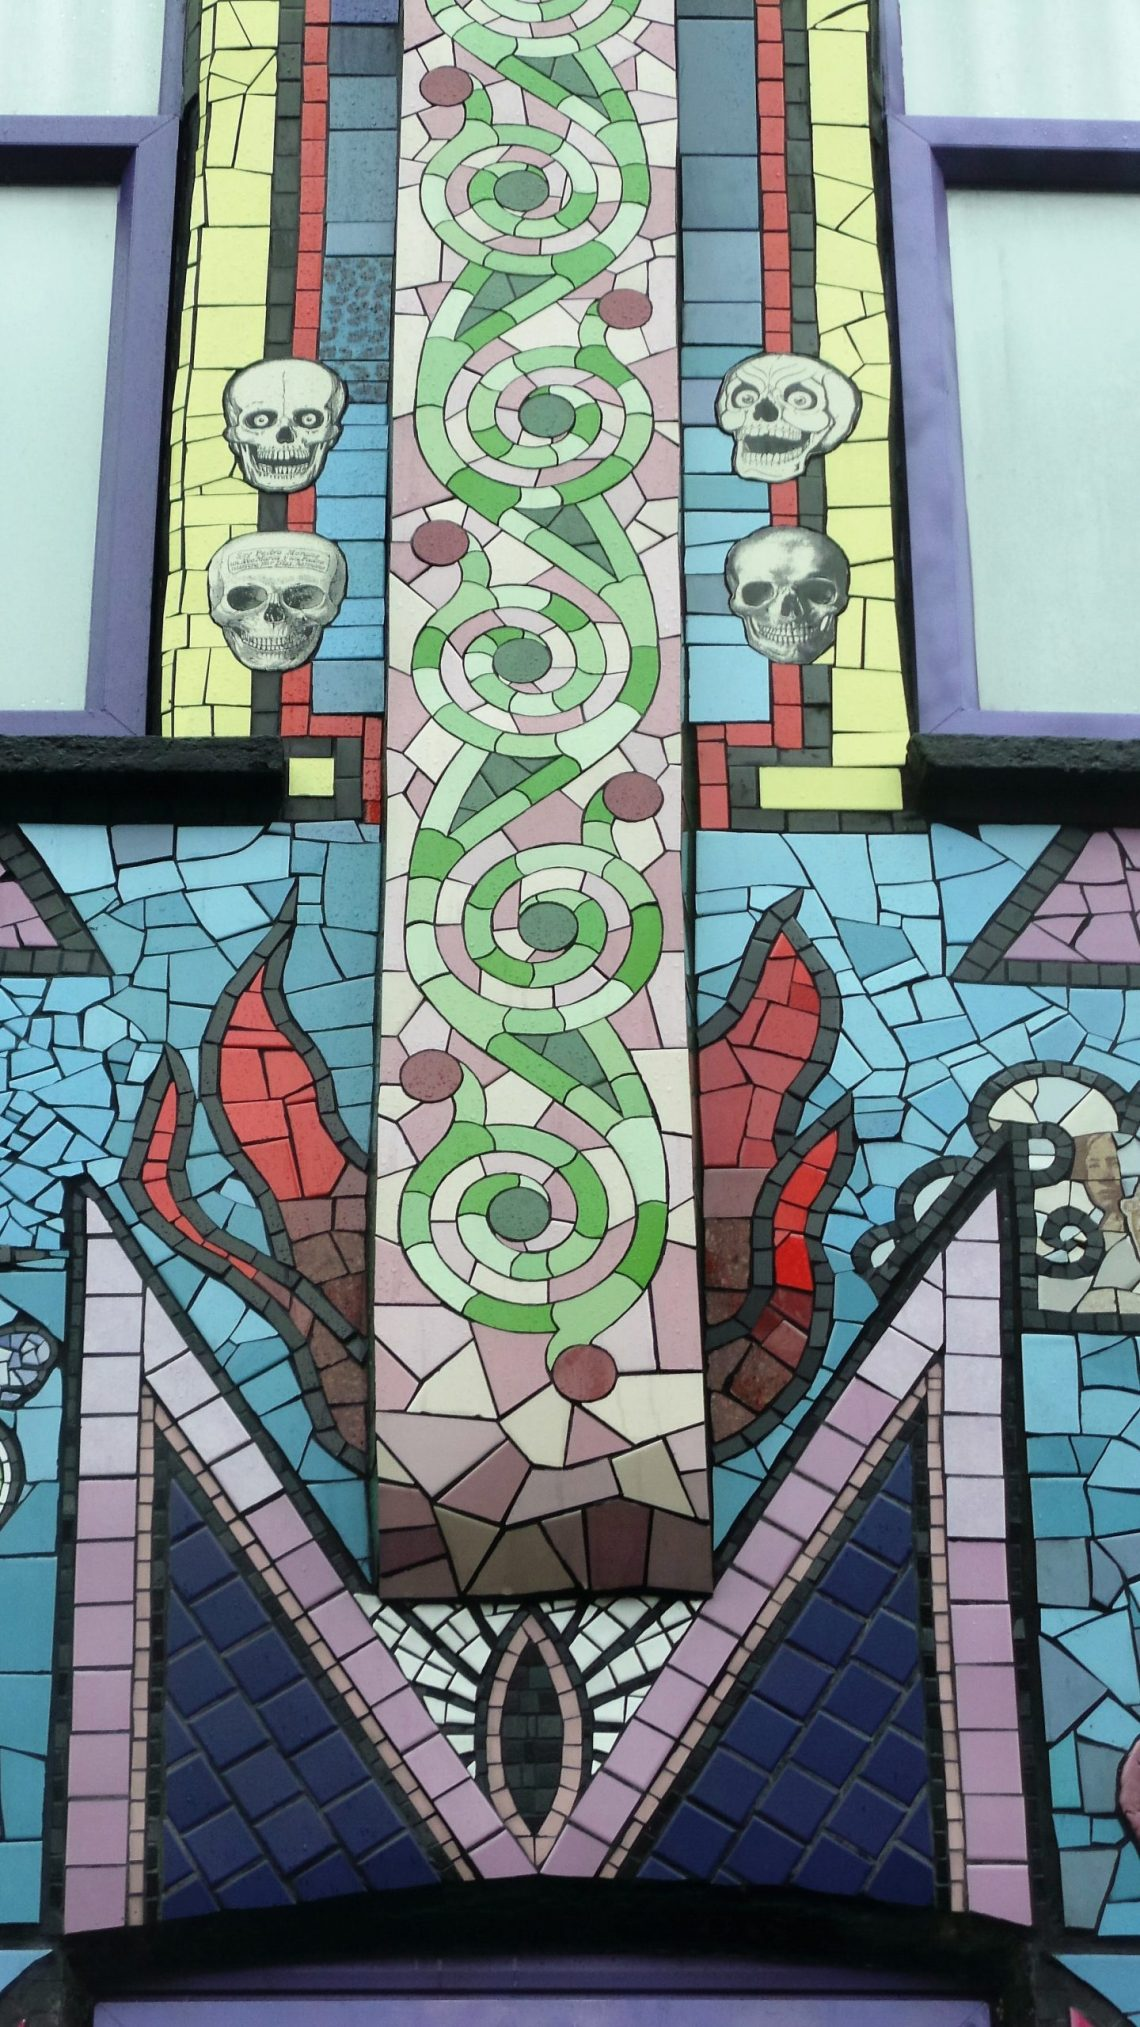 A mosaic DMT drug molecule on the front of the house by Eoghan Ebrill